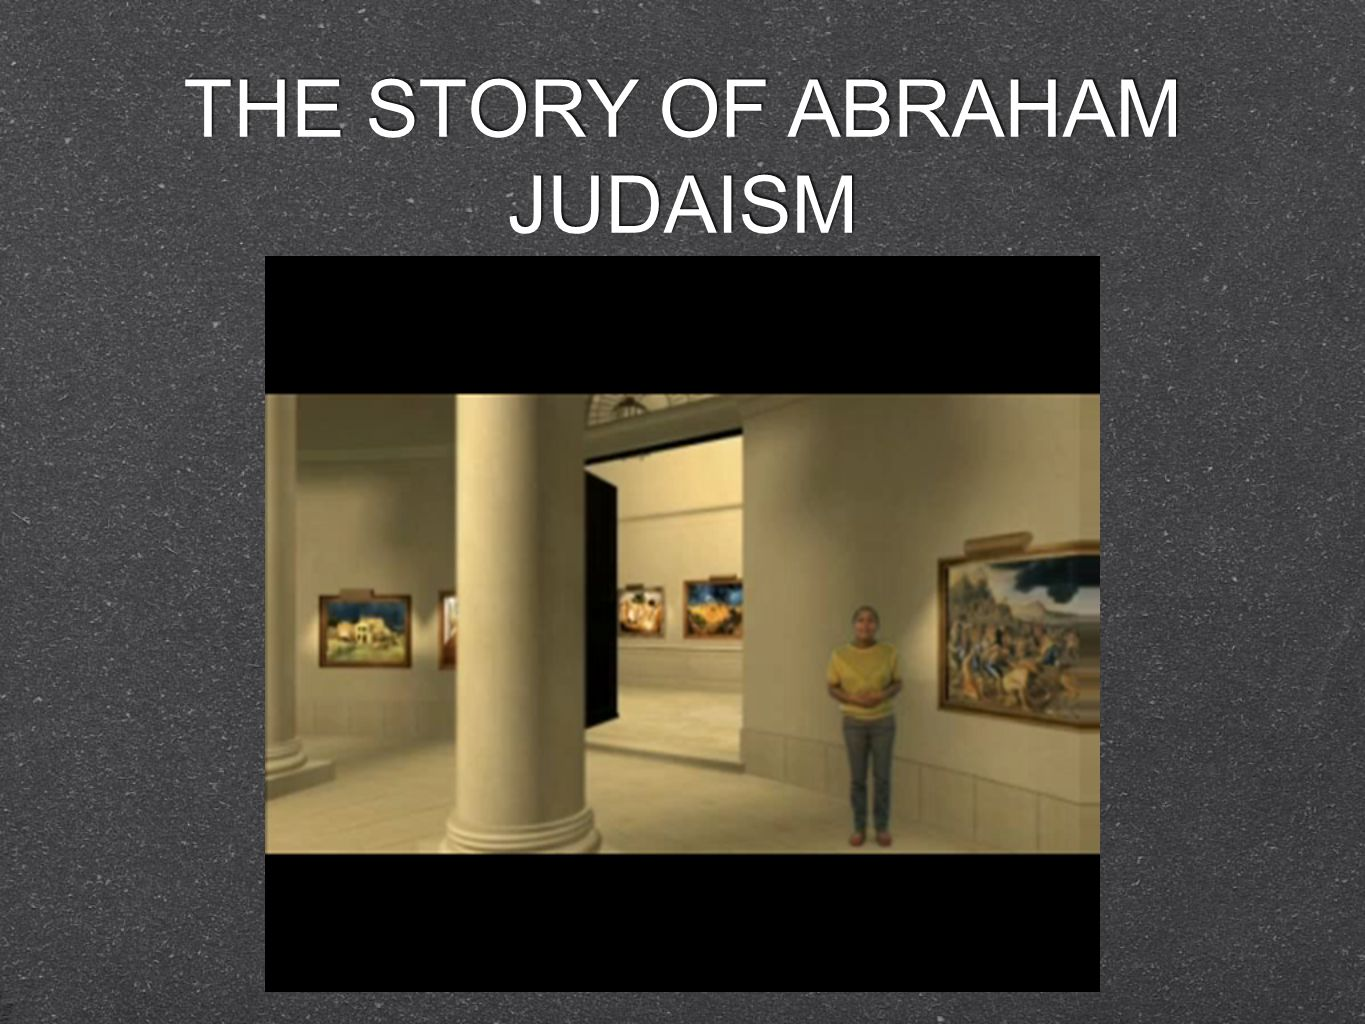 THE STORY OF ABRAHAM JUDAISM